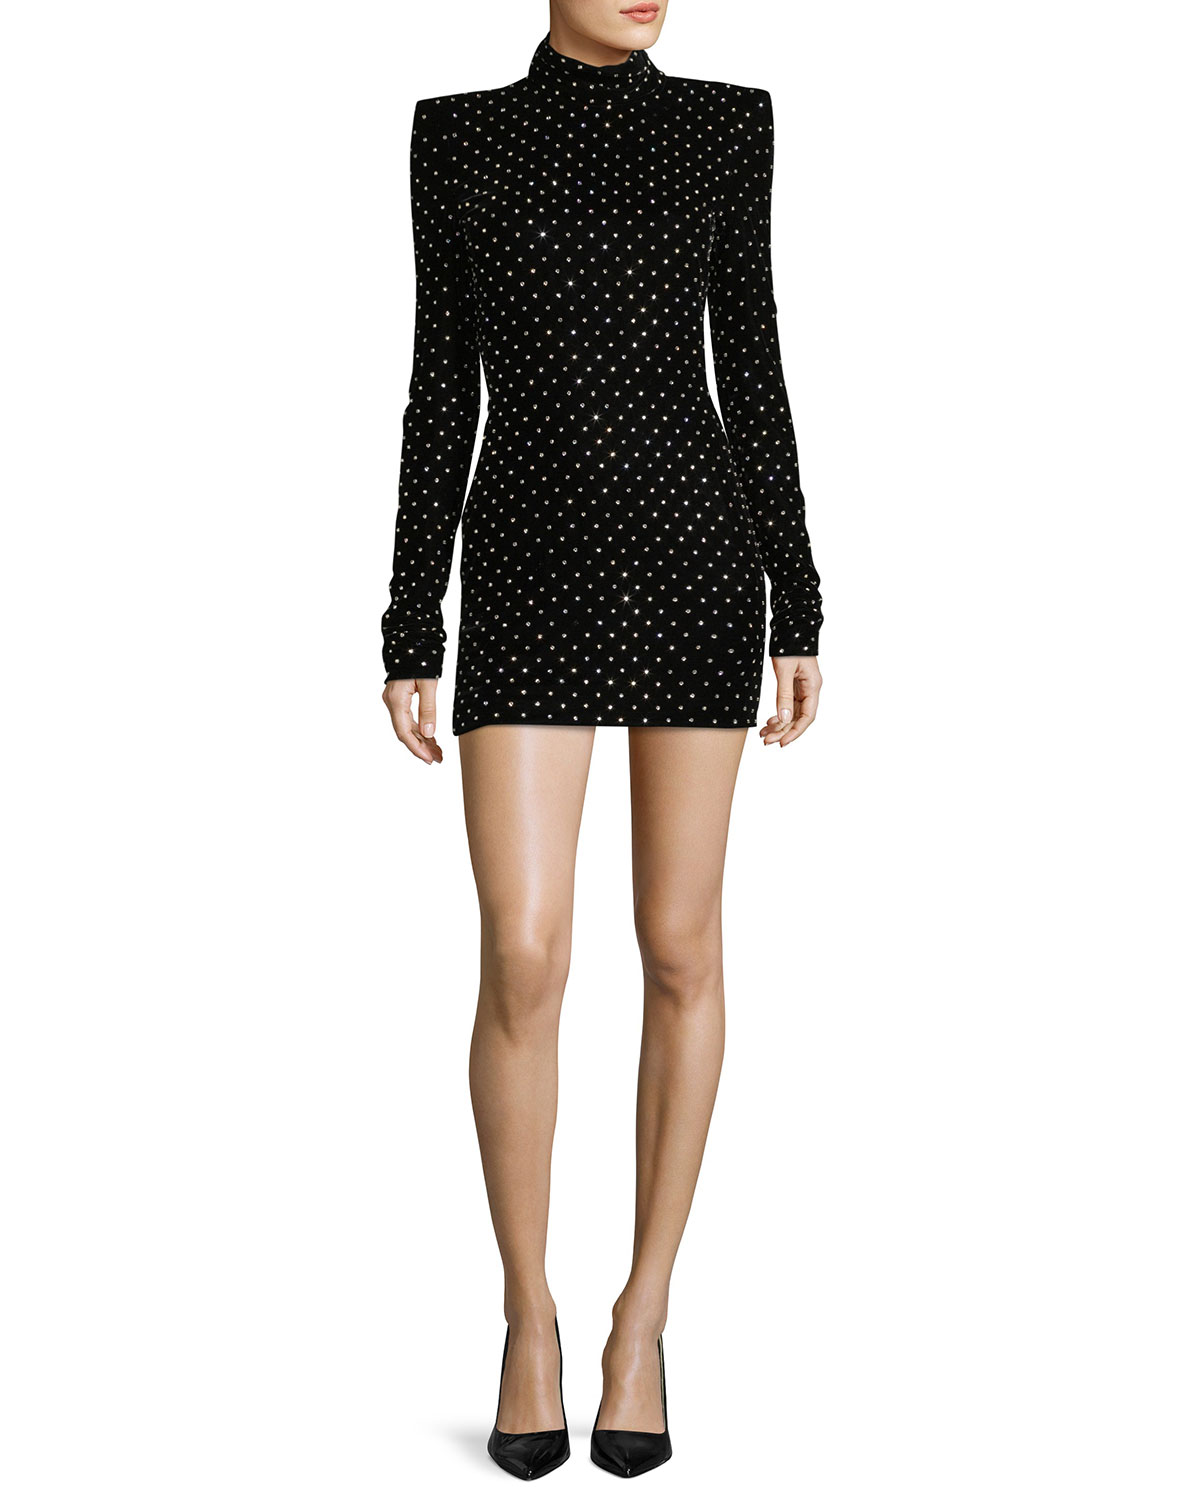 Crystal-Studded Turtleneck Minidress